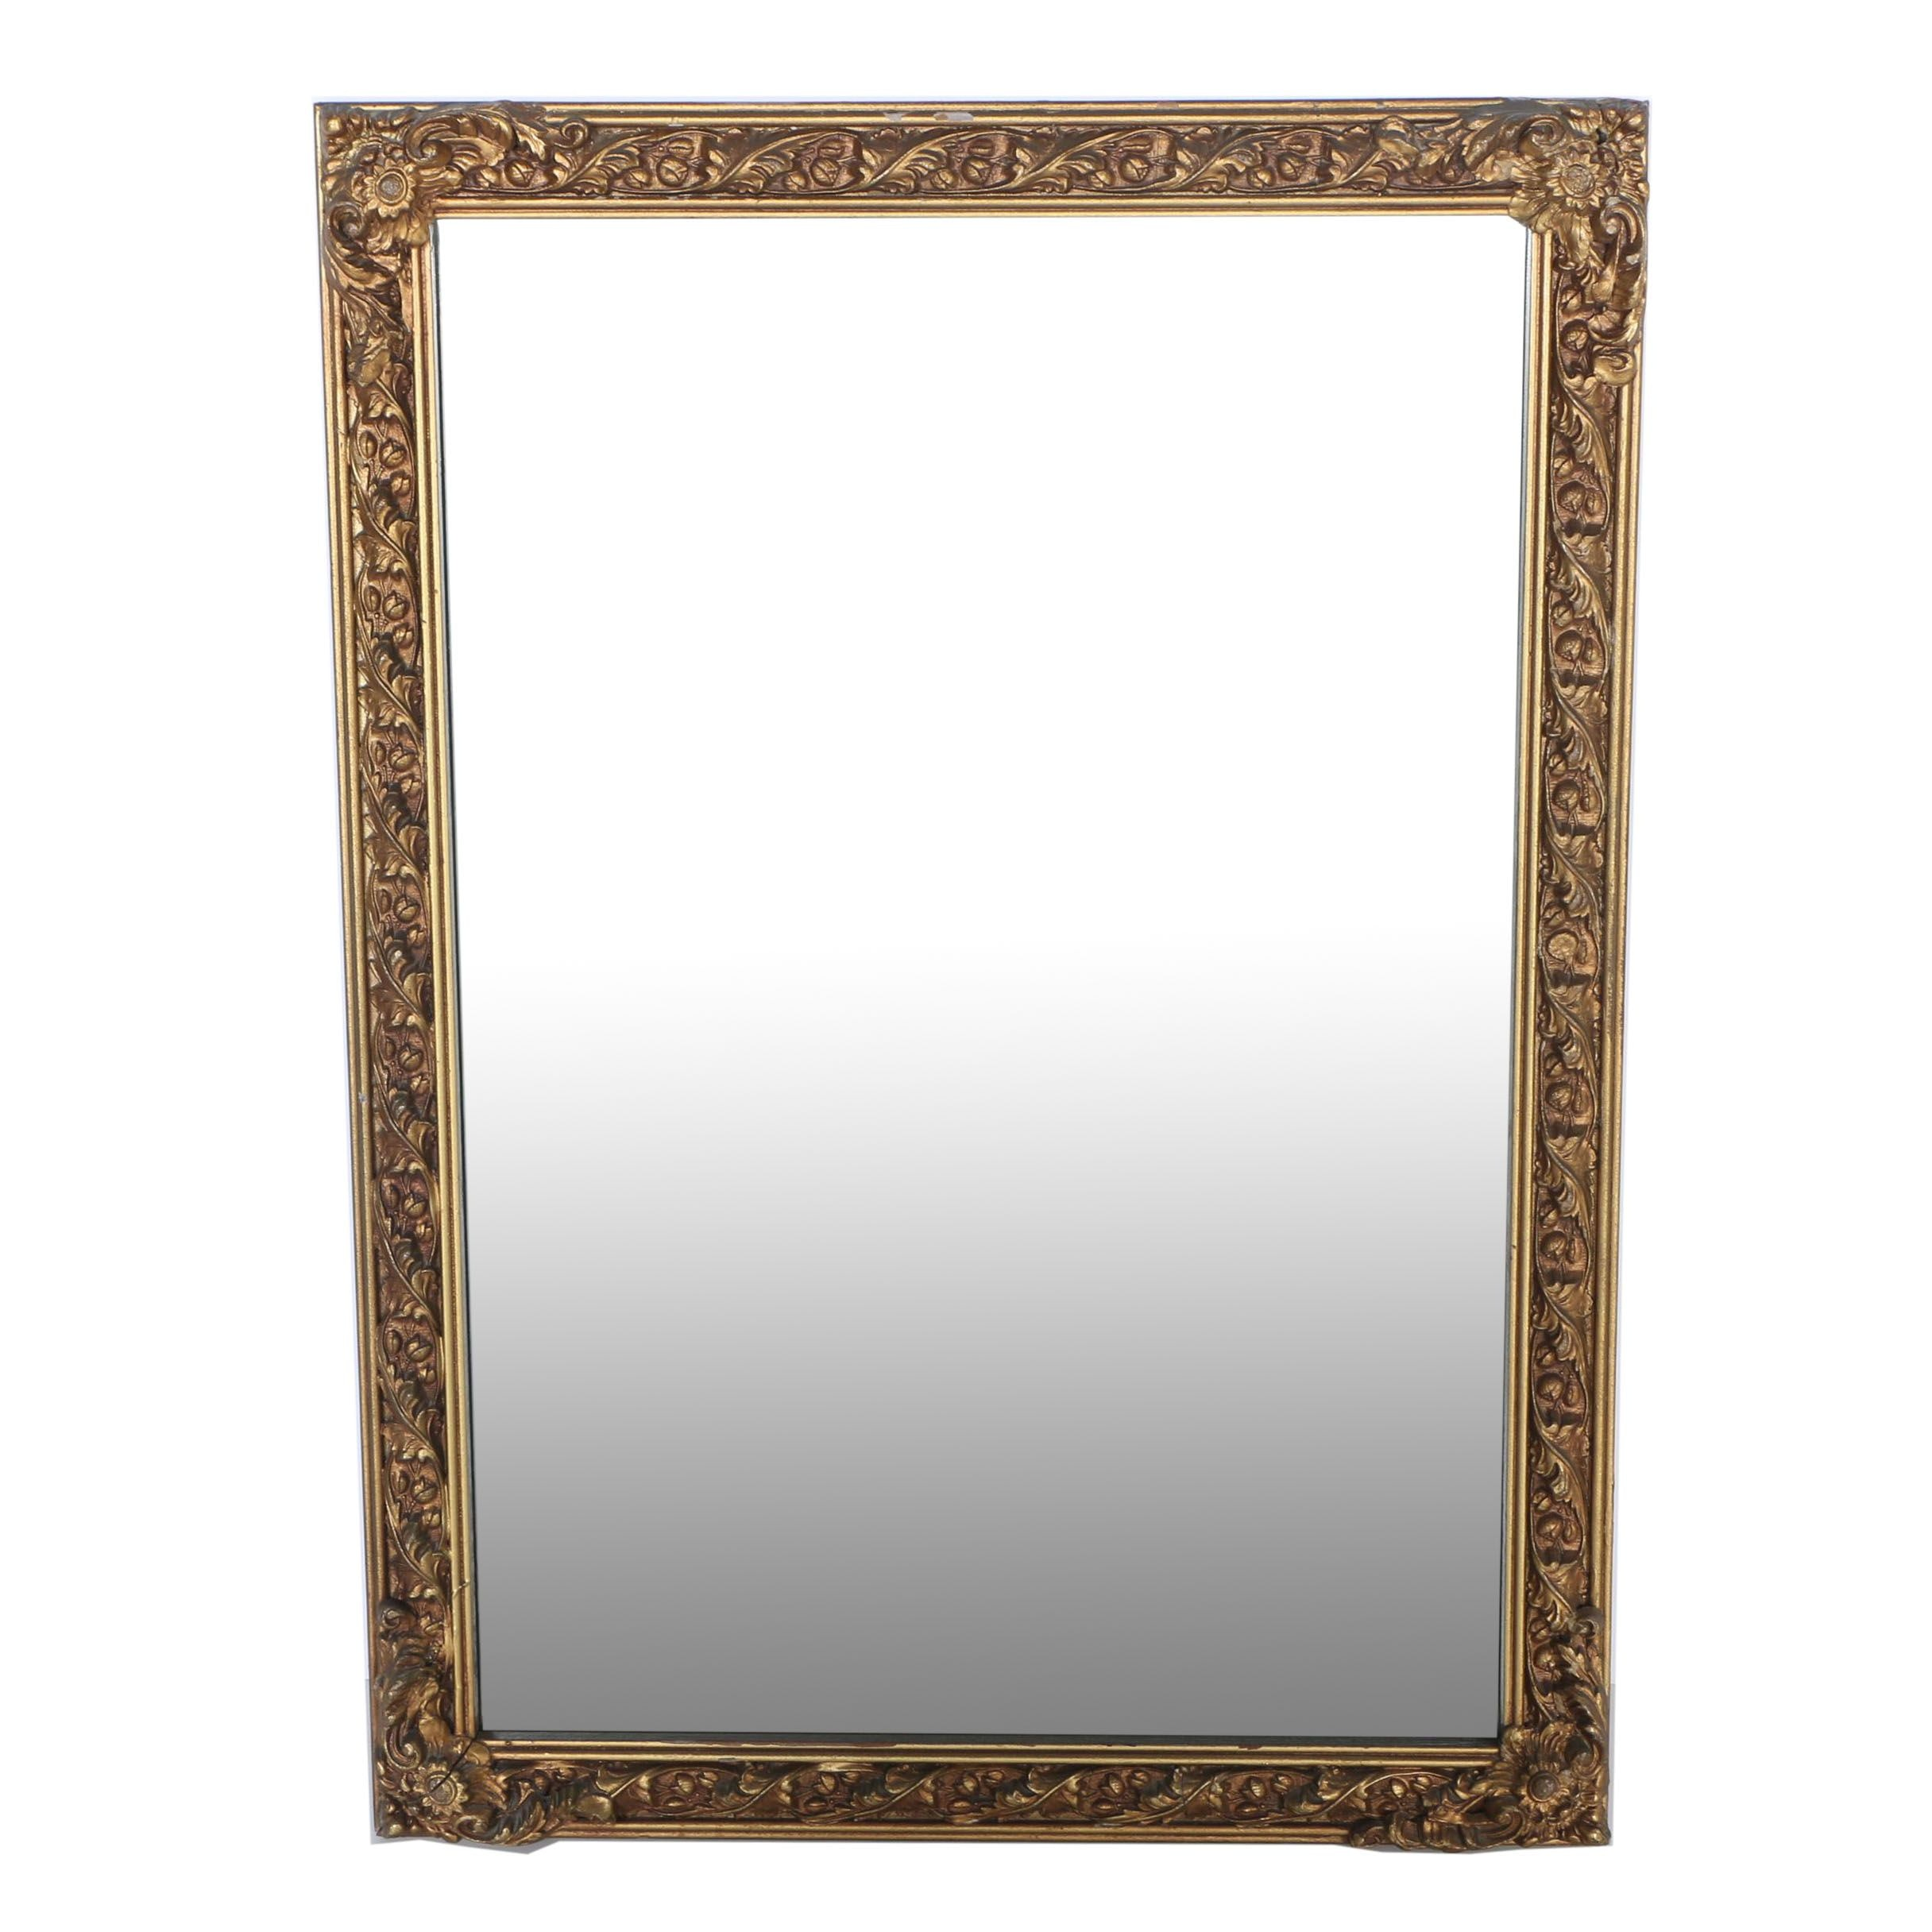 Ornately Framed Gold Toned Wall Mirror